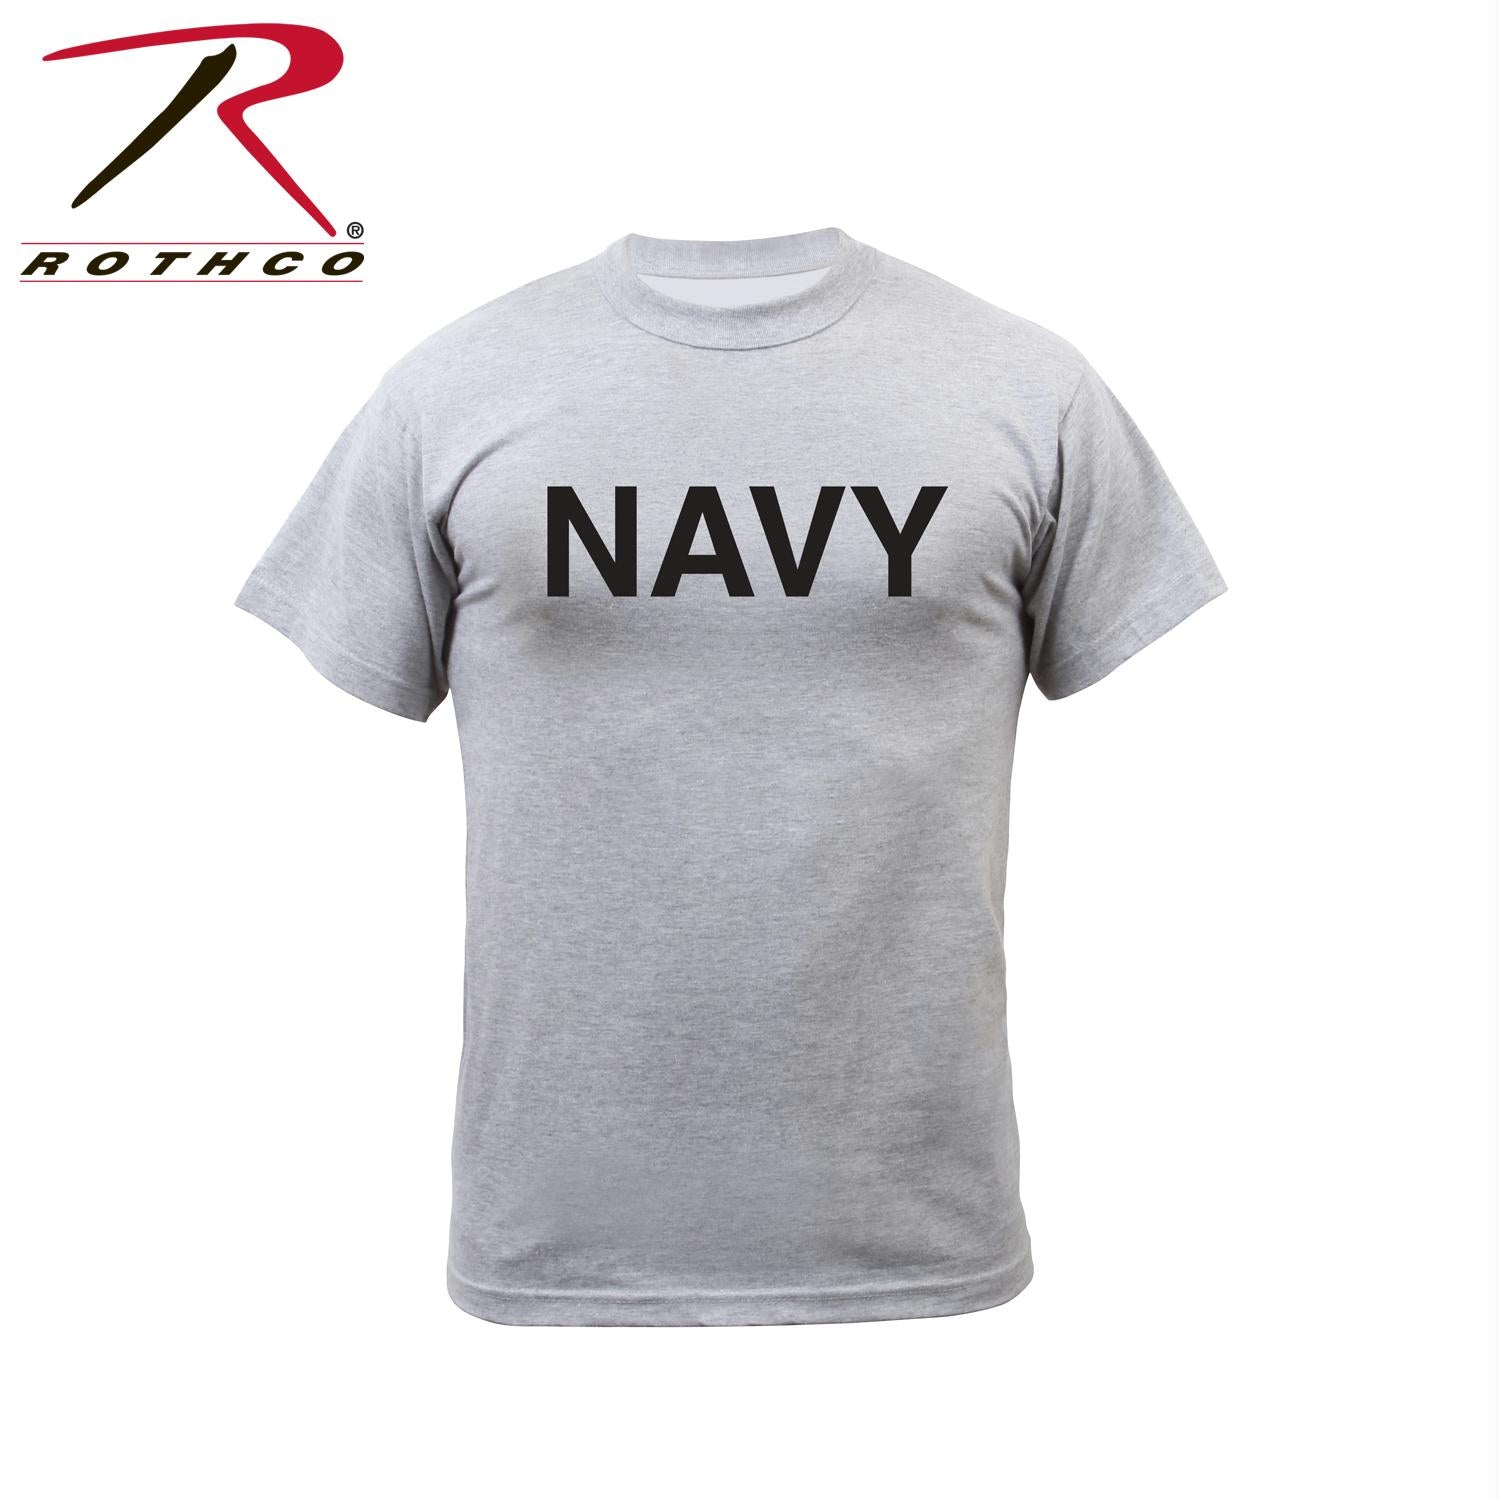 Rothco Grey Physical Training T-Shirt - Navy / 3XL